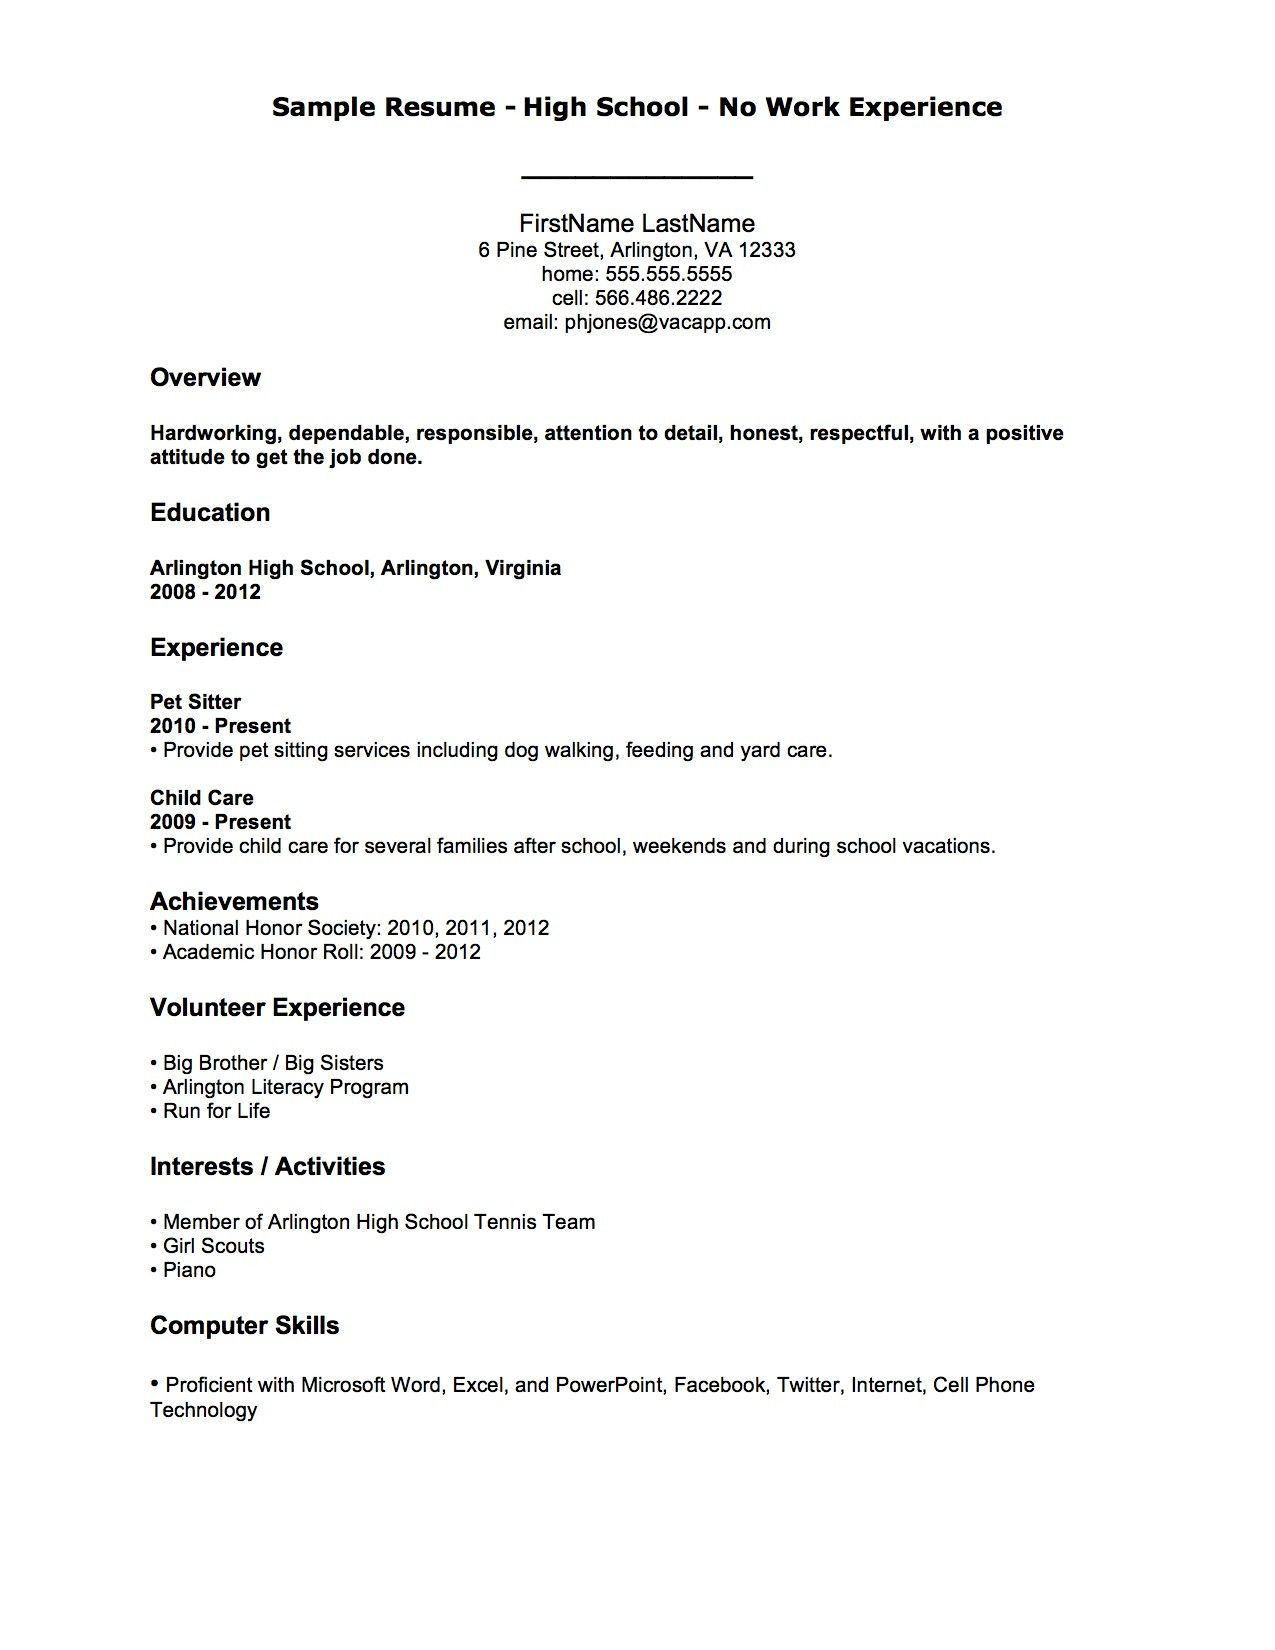 How To Write Resume With No Job Experience How To Write A Resume For A Job With No Experience